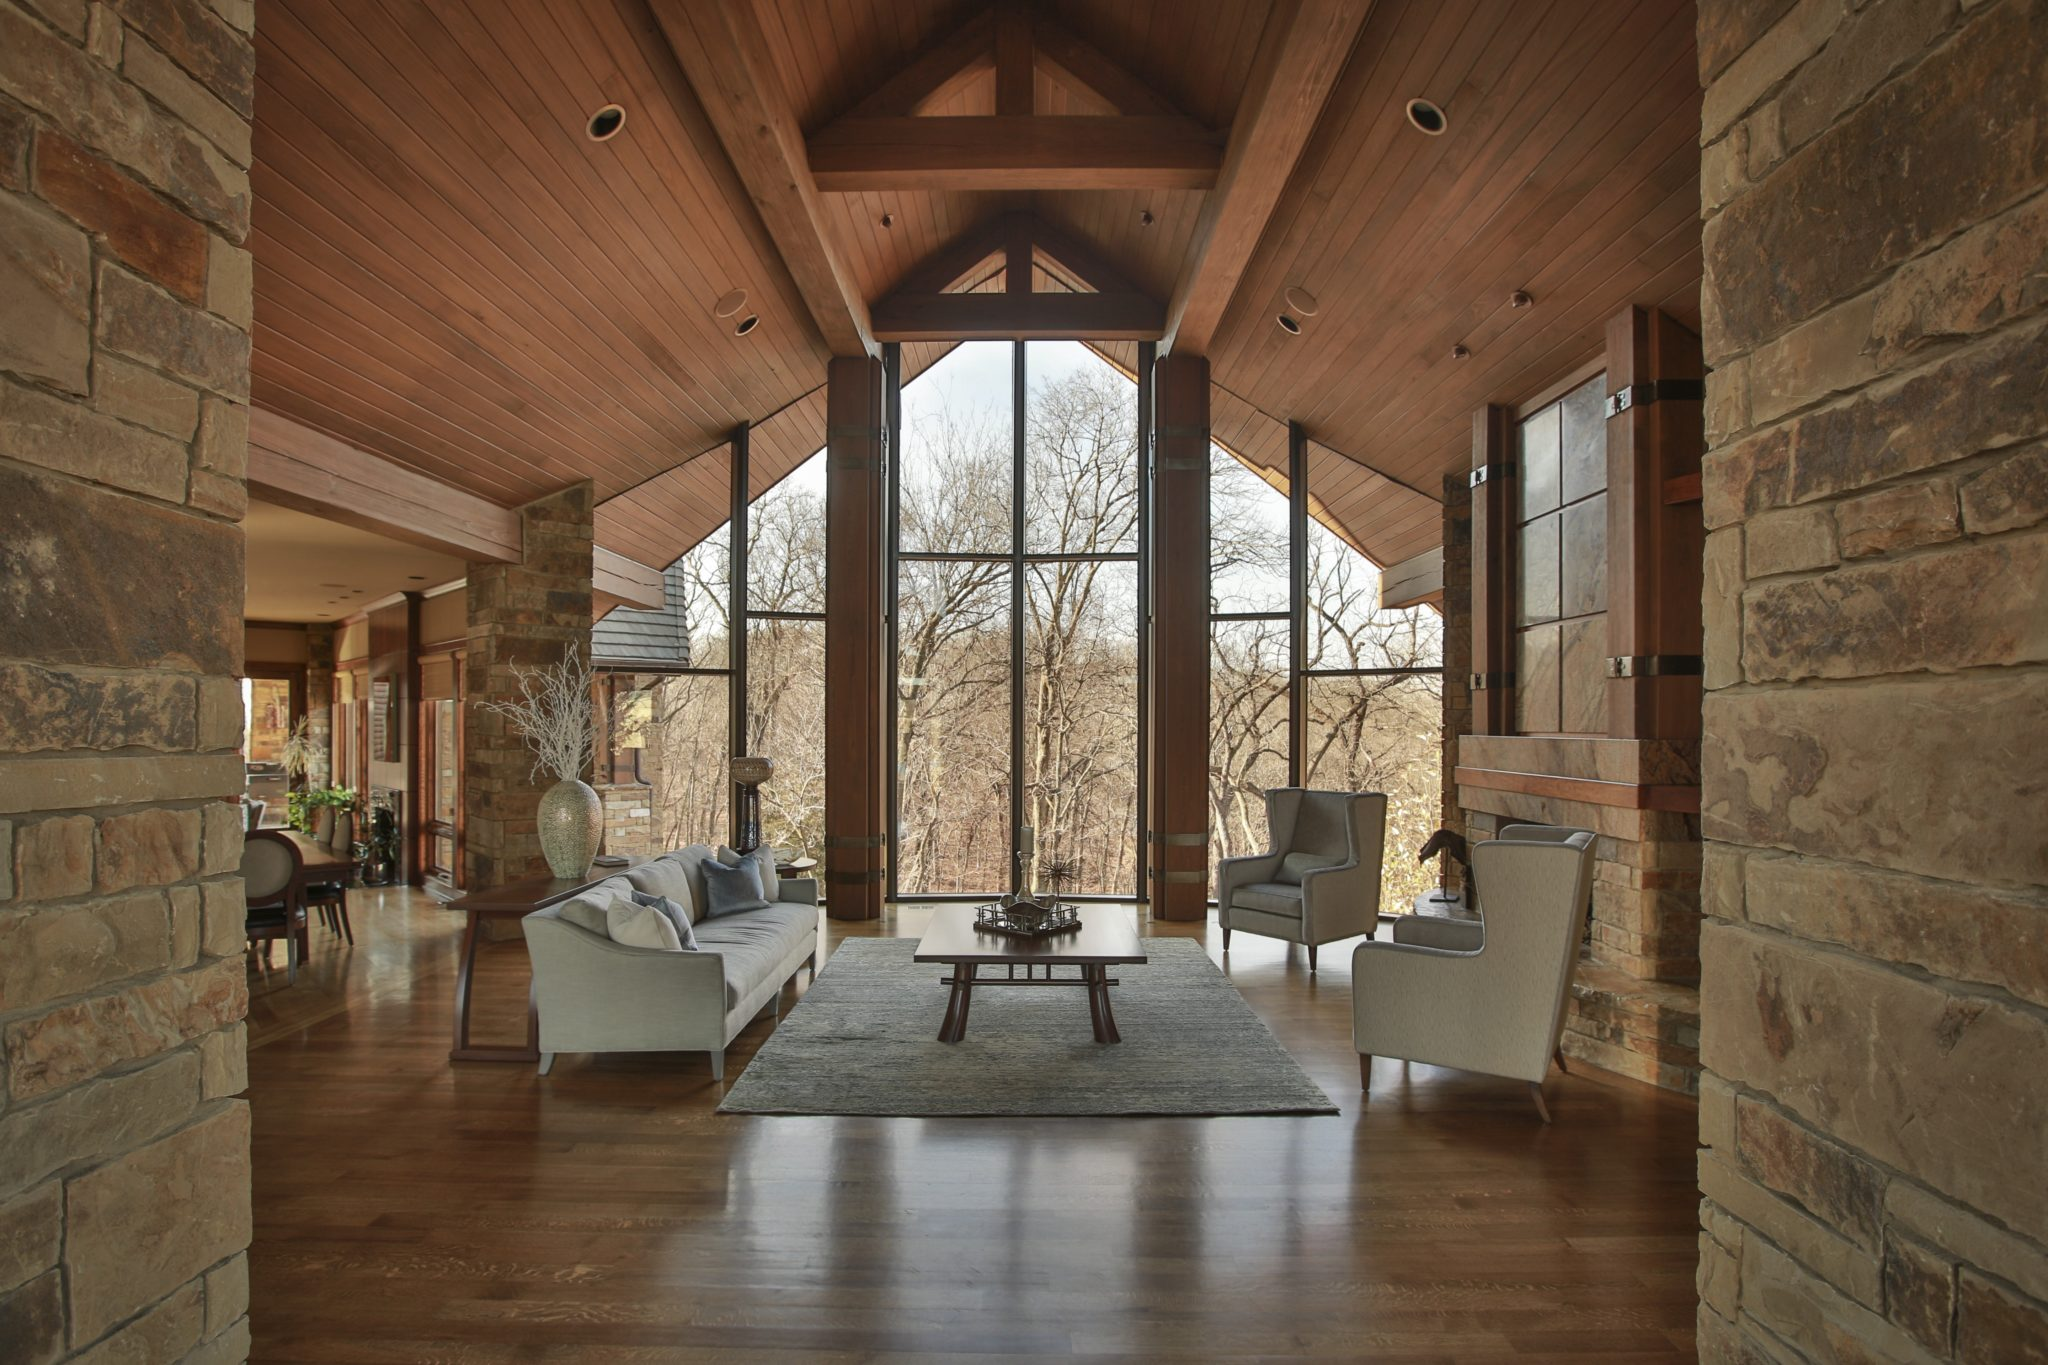 Rustic Wooded Lodge by the Lake with Wood Ceiling by Karen Mills